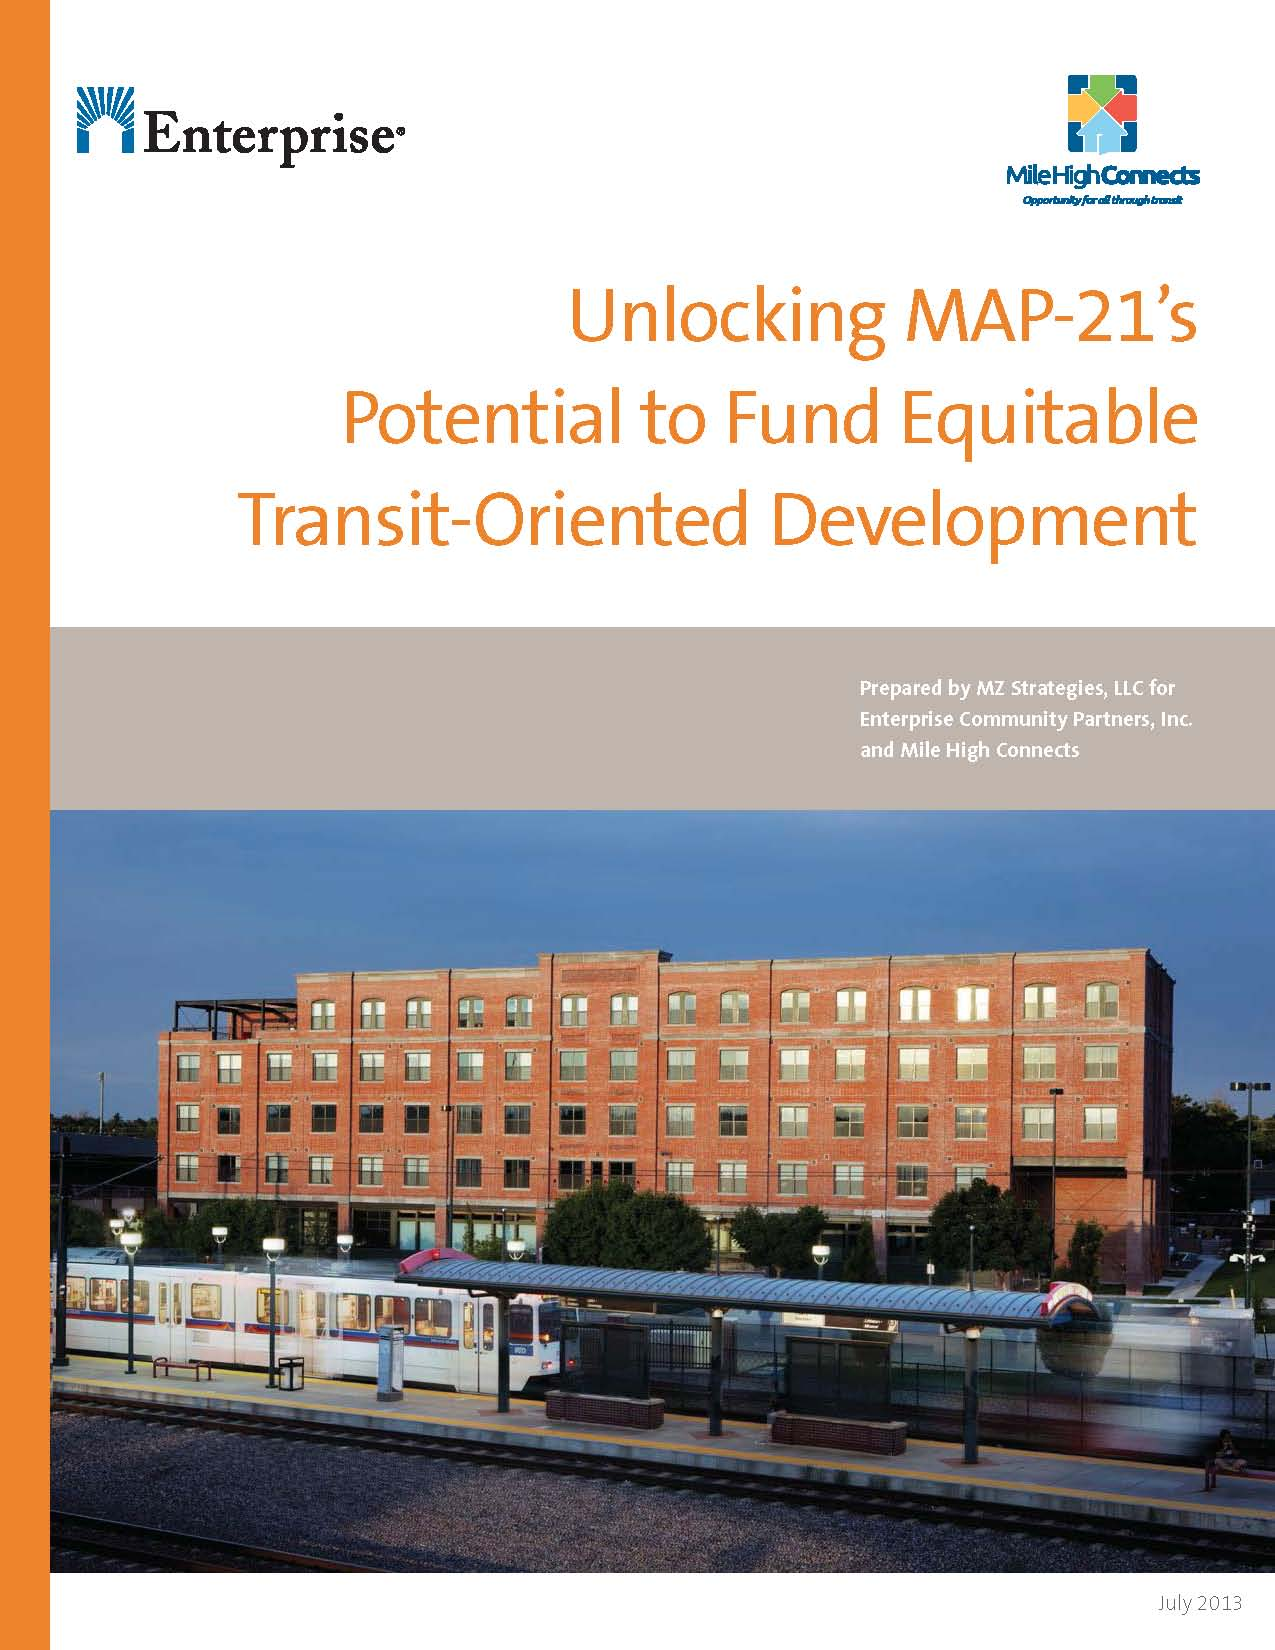 Unlocking MAP-21's Potential to Fund Equitable Transit-Oriented Development released by Enterprise Community Partners and Mile High Connects.